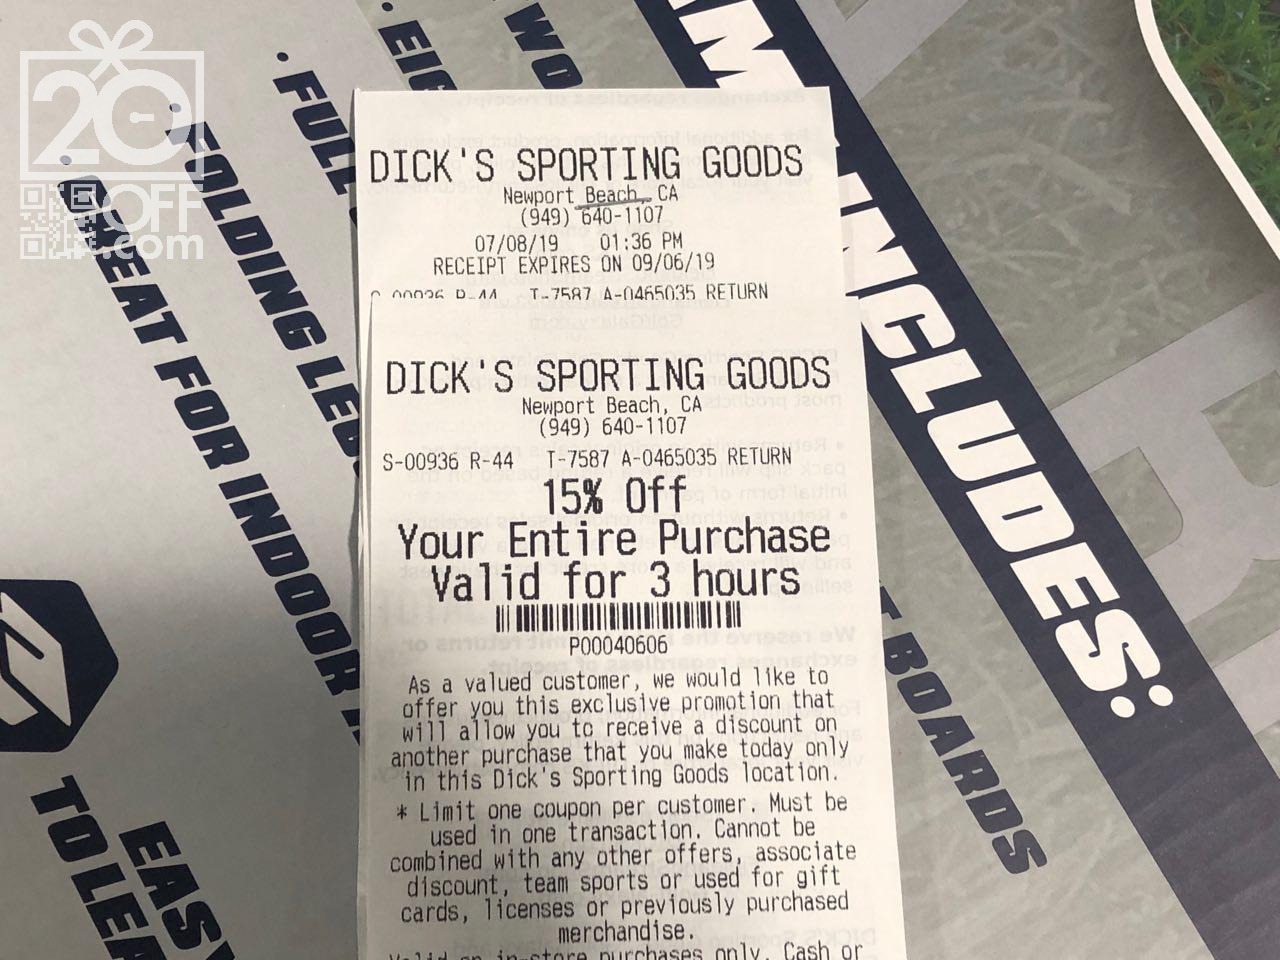 Coupons at the Bottom of Your Receipt at Dick's Sporting Goods